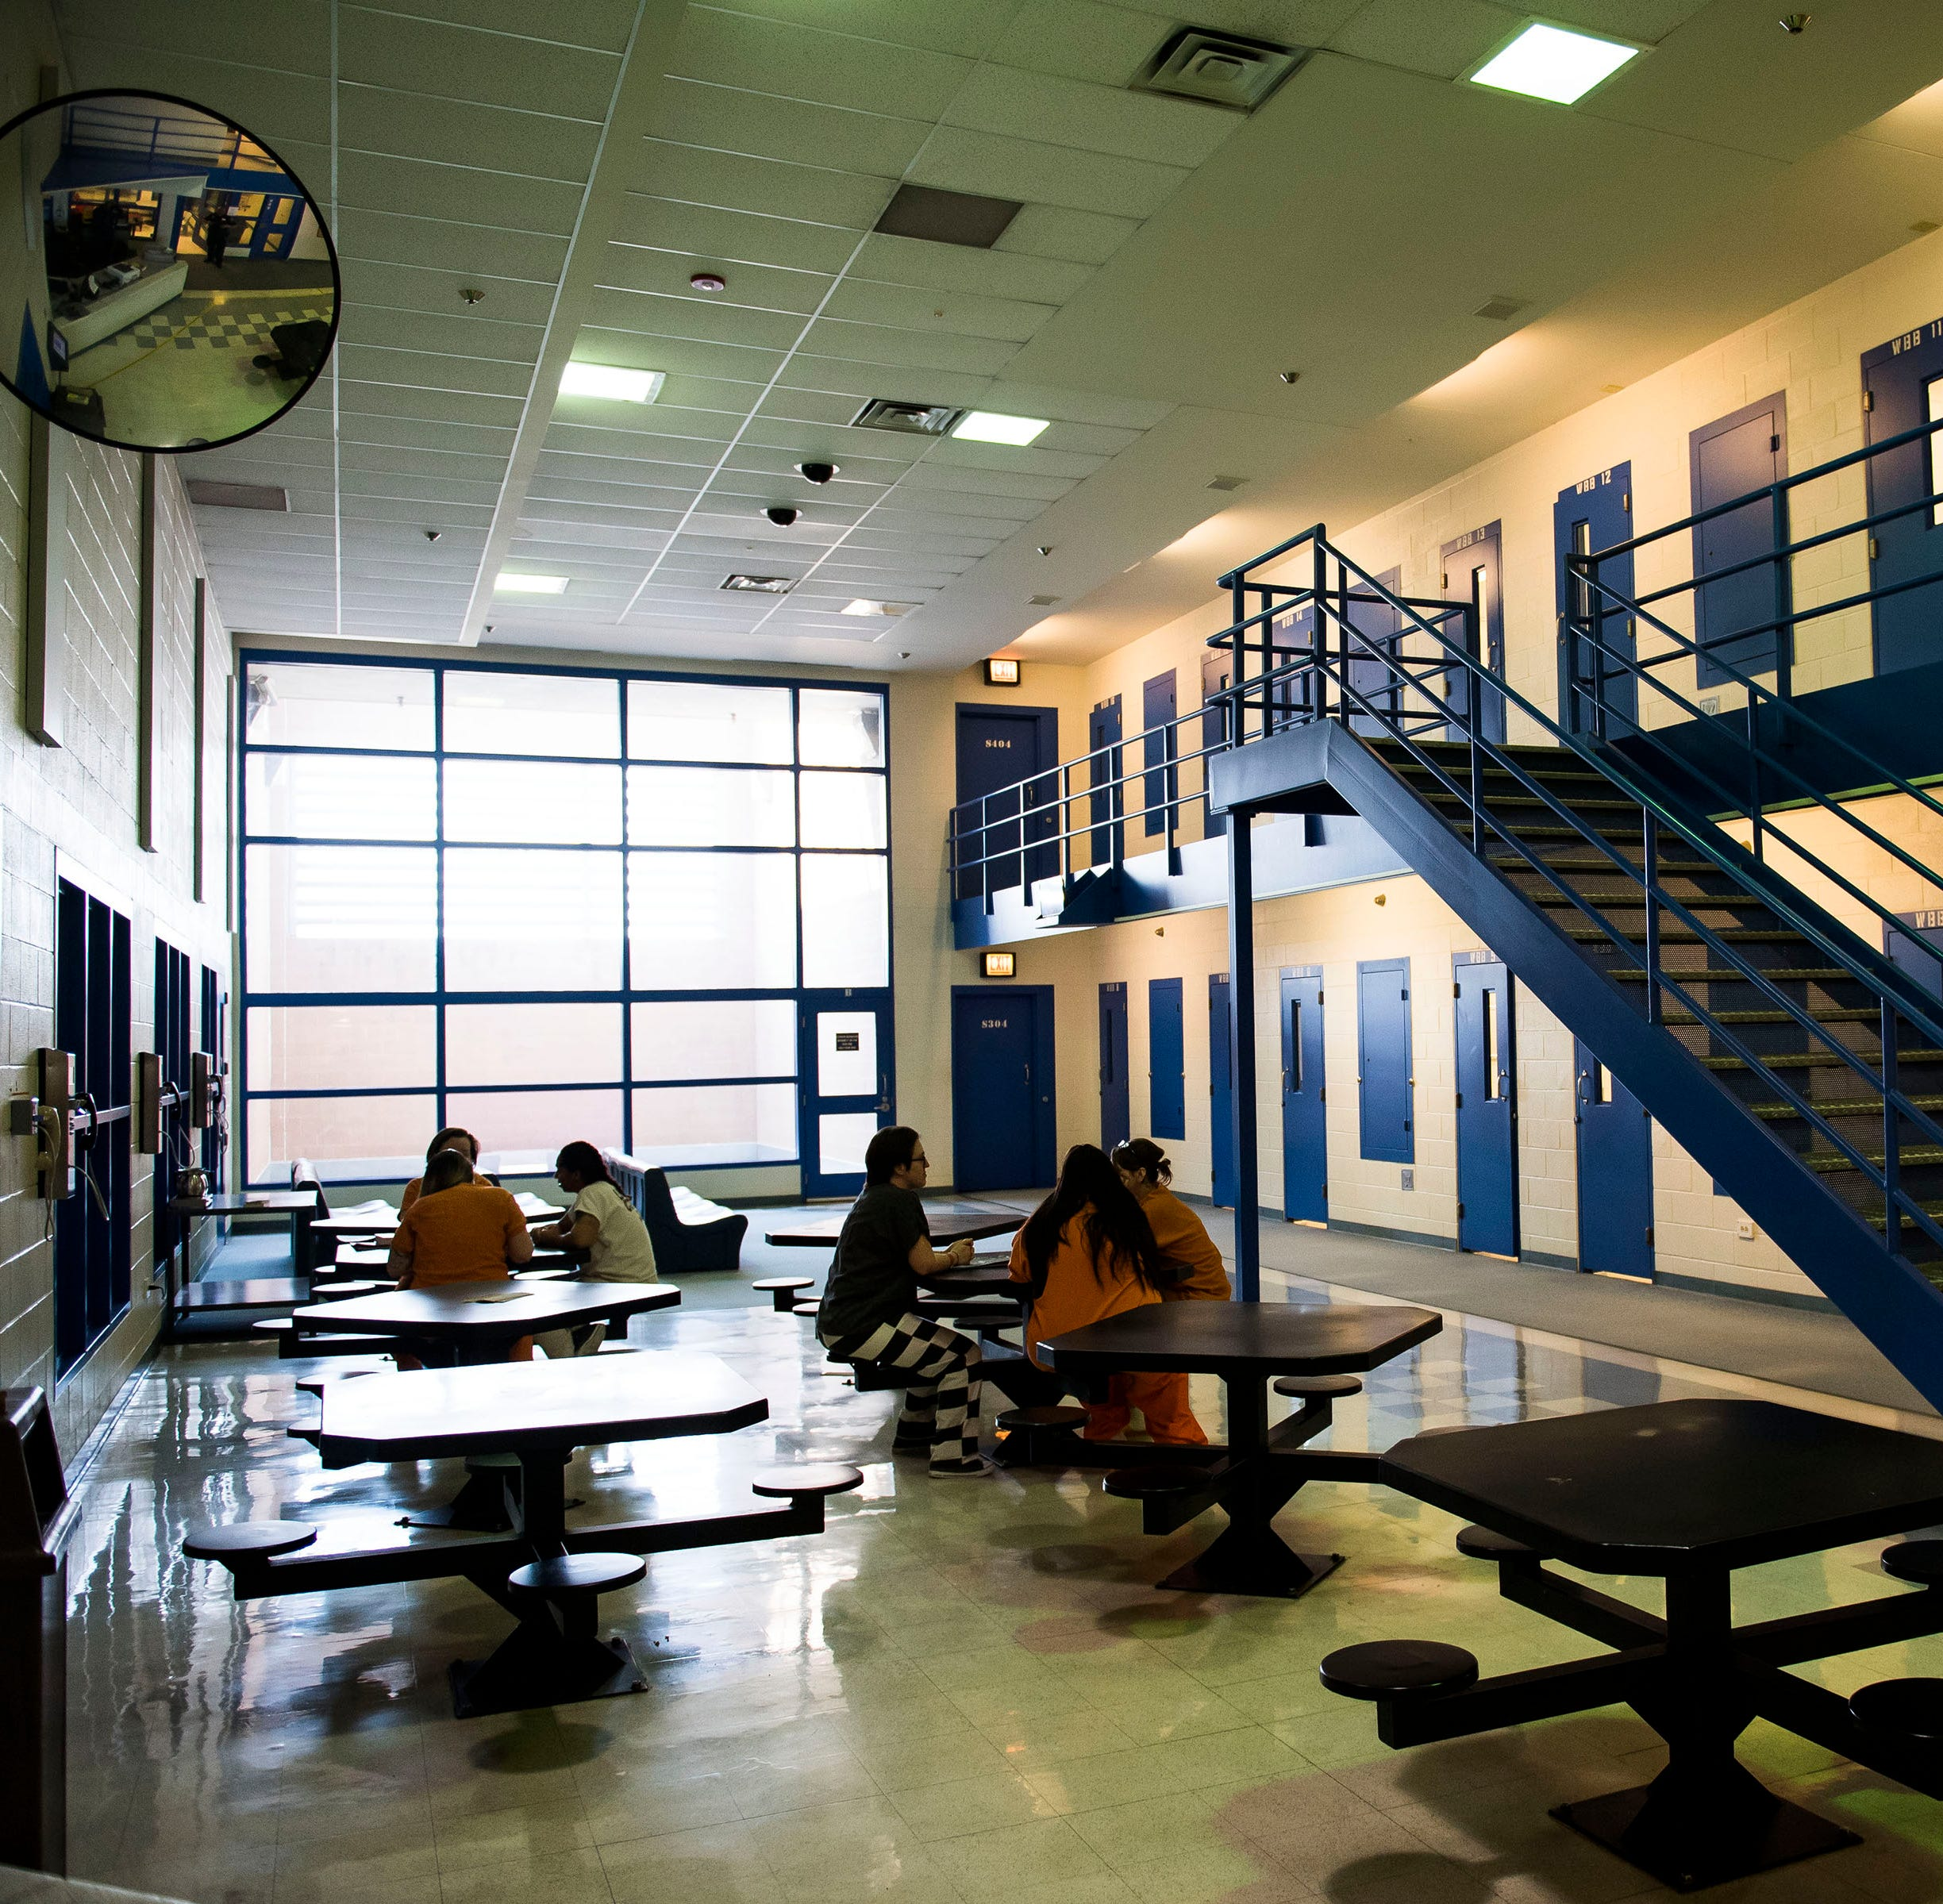 Report: 32 minutes elapsed between checks on jail inmate who died by suicide